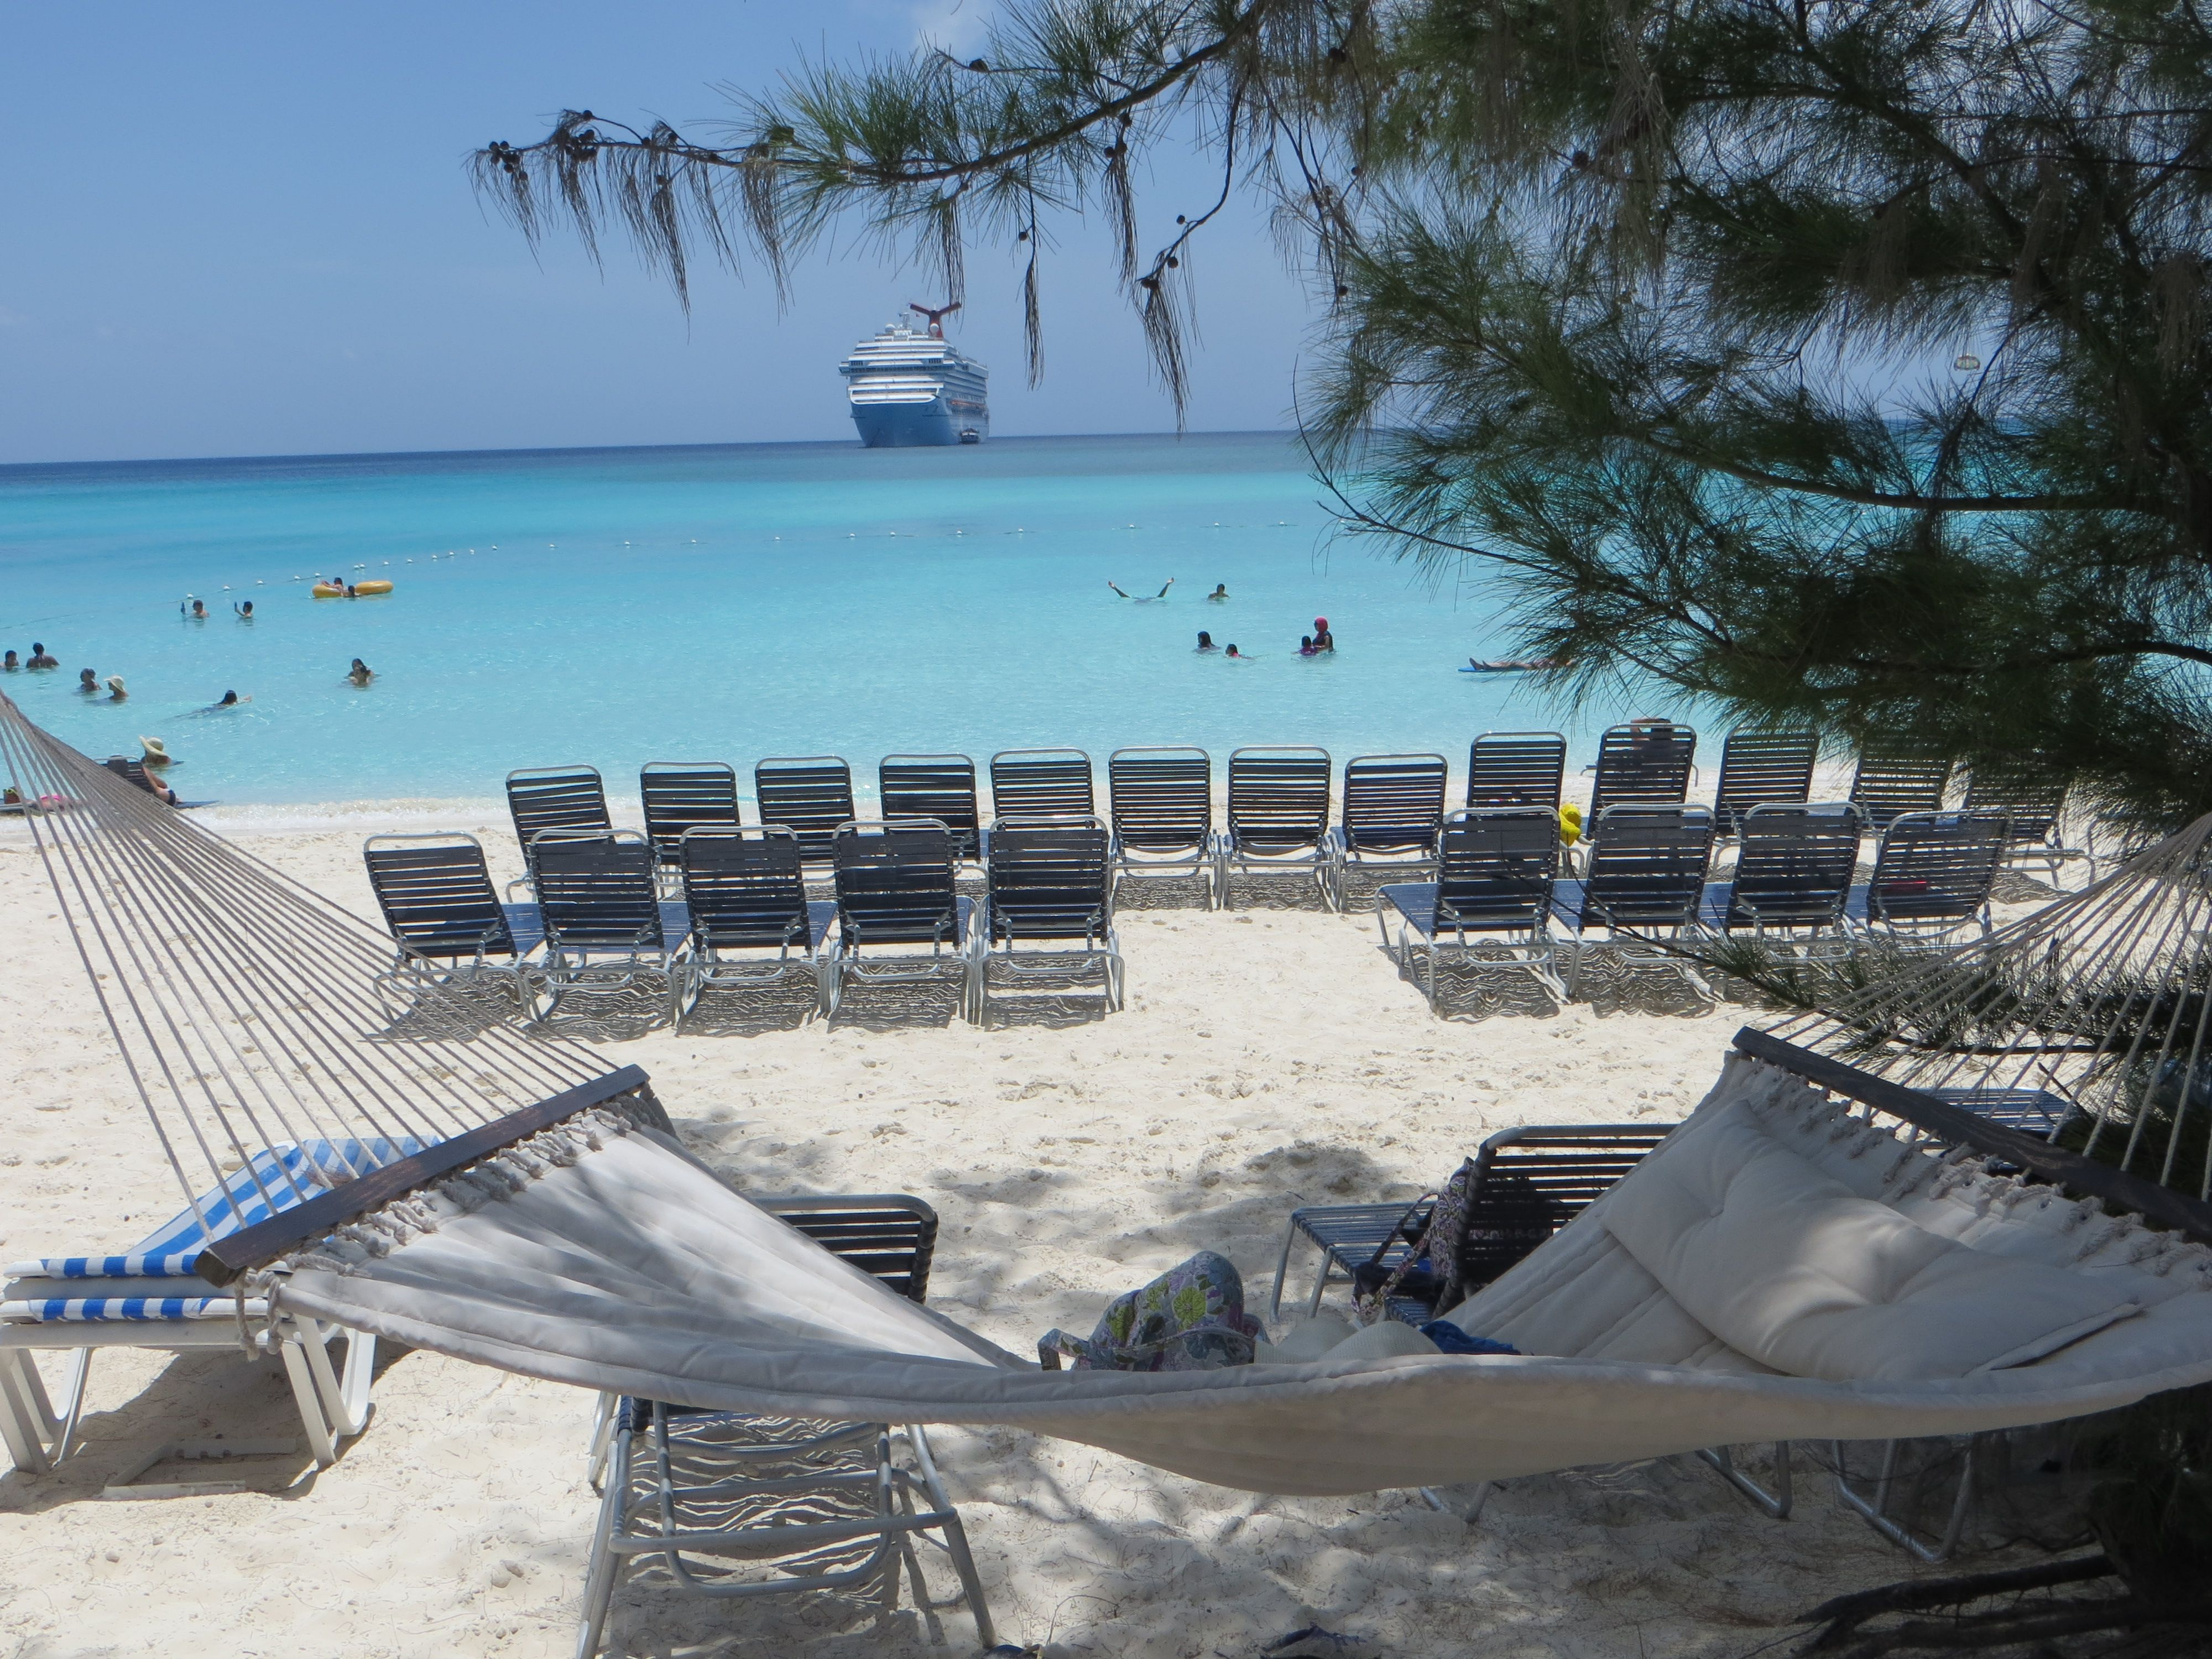 How a Vision Board Landed Me in the Caribbean. http://empoweredls.com/how-creating-a-vision-board-landed-me-in-the-caribbean/